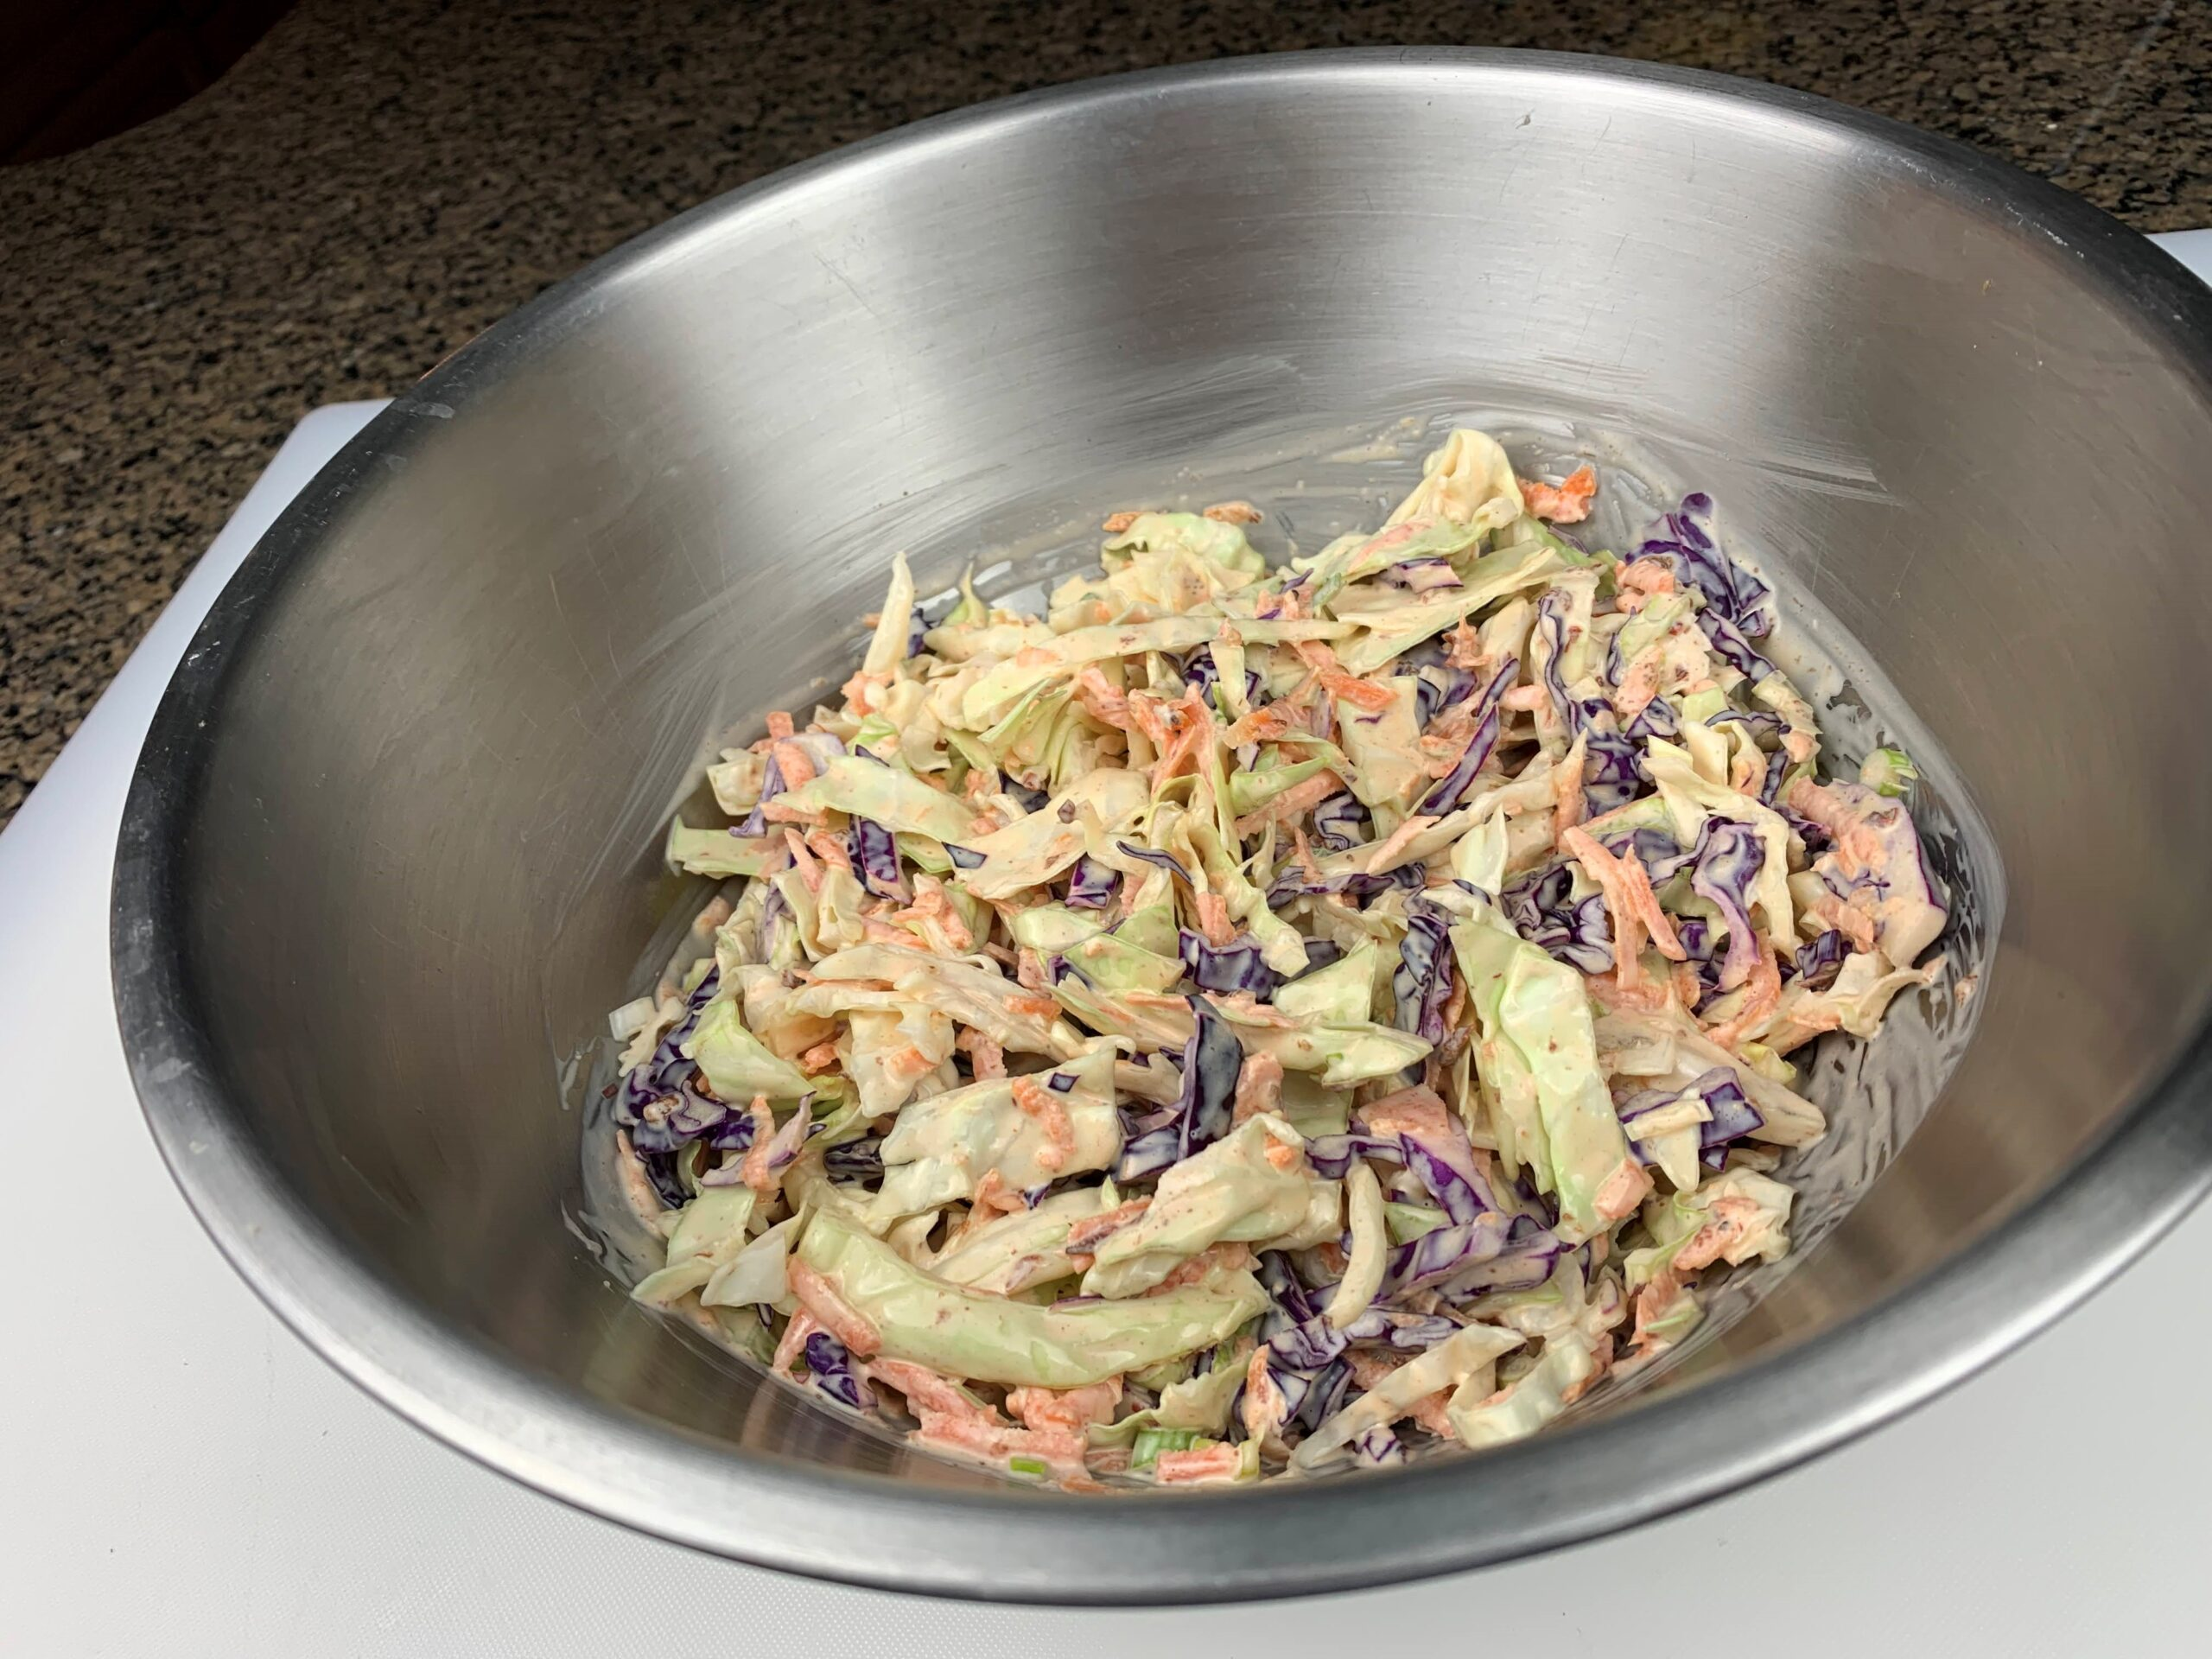 coleslaw in stainless steel mixing  bowl